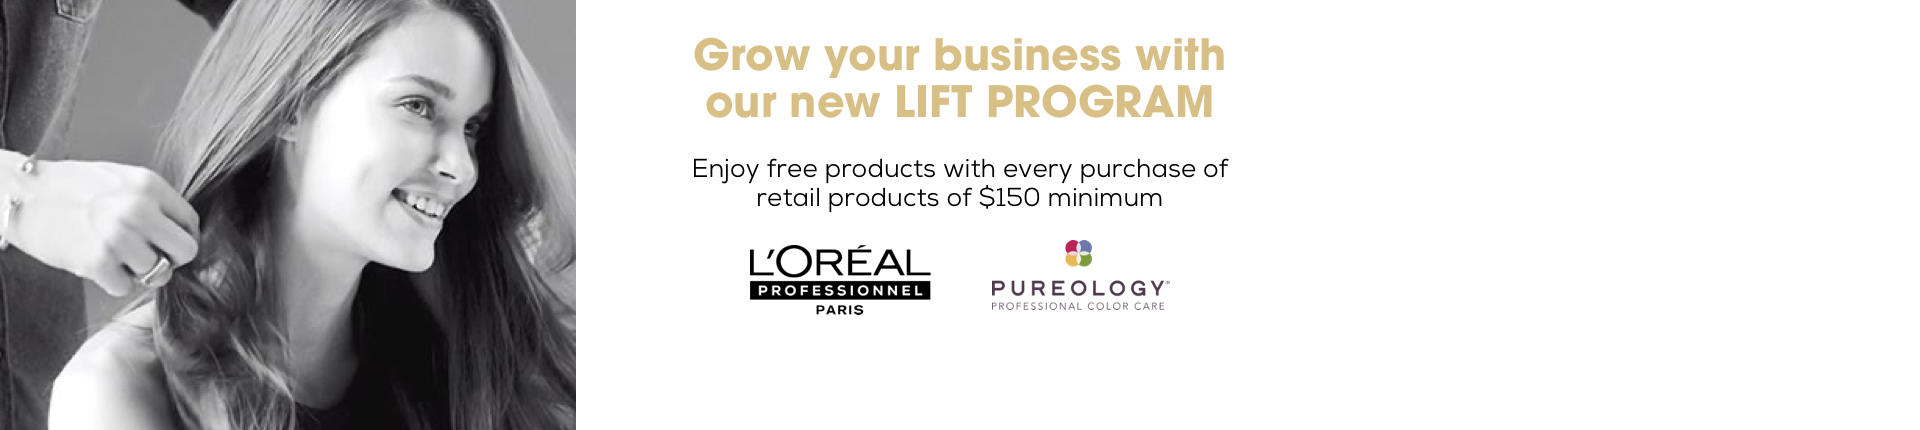 LIFT PROGRAM | L'Oréal Partner Shop